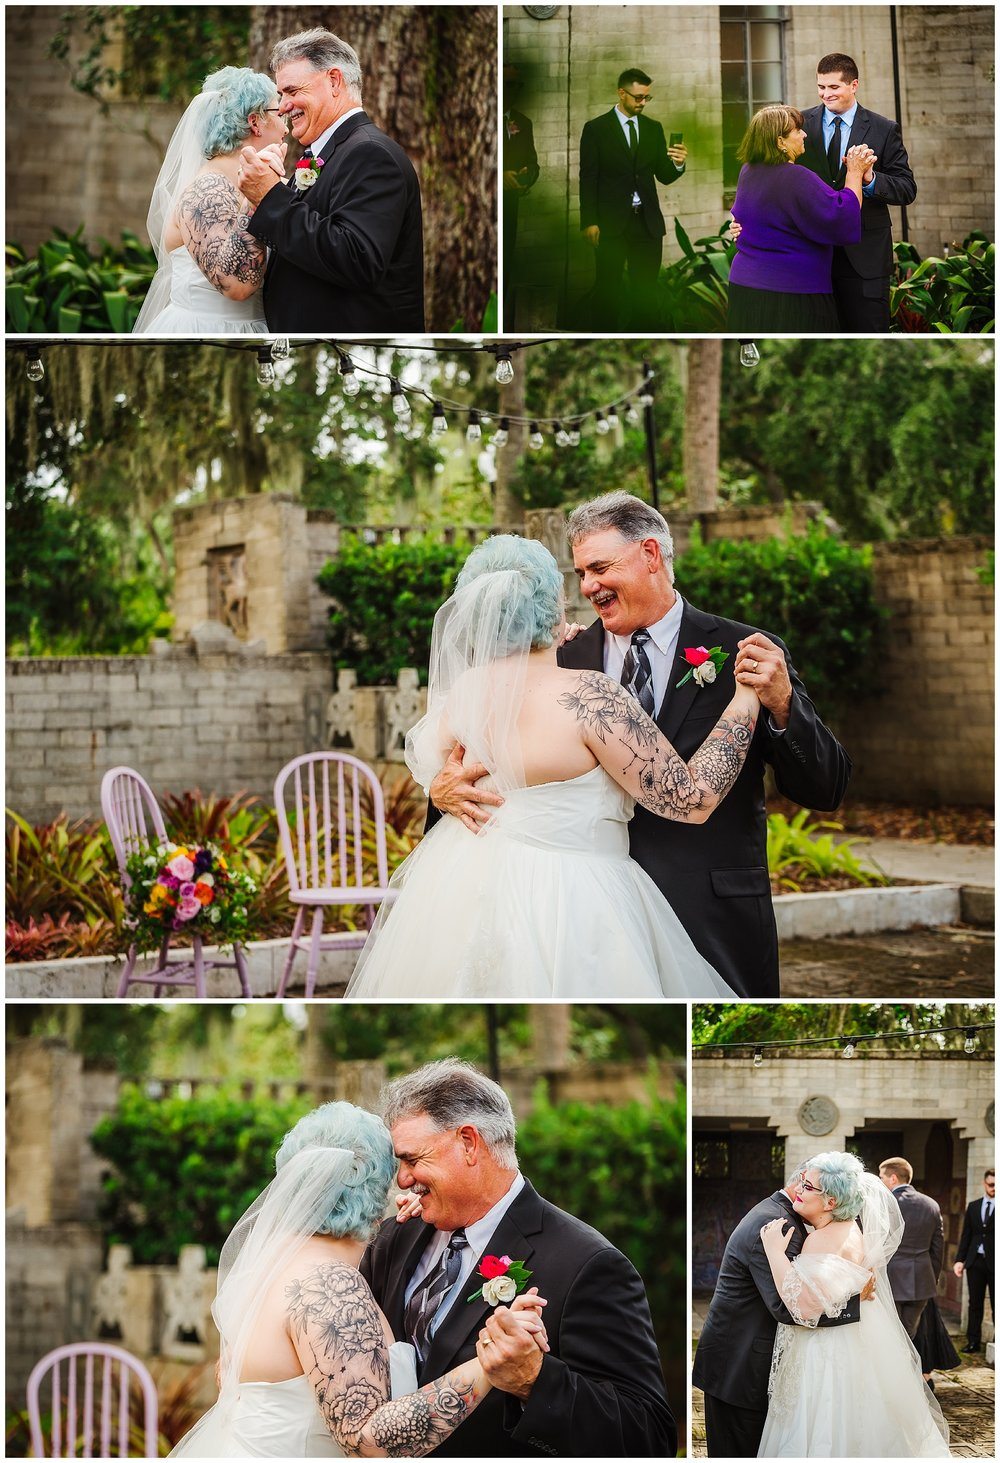 colorful-disney-elopement-micro-wedding-maitland-arts-center-orlando-photographer_0149.jpg